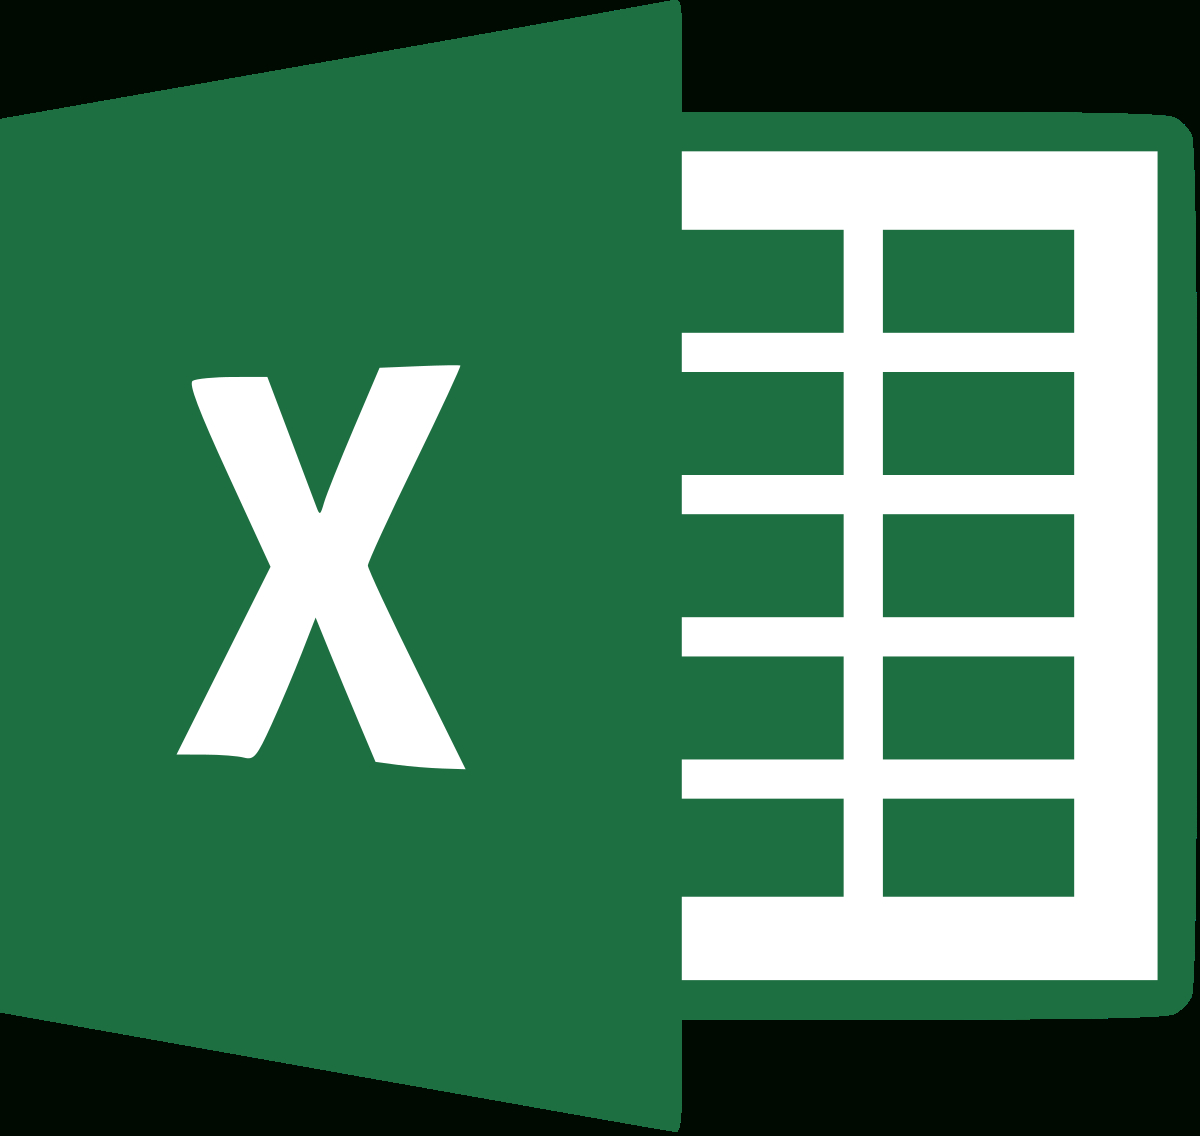 microsoft excel wikipedia in free spreadsheets for windows free spreadsheets for windows